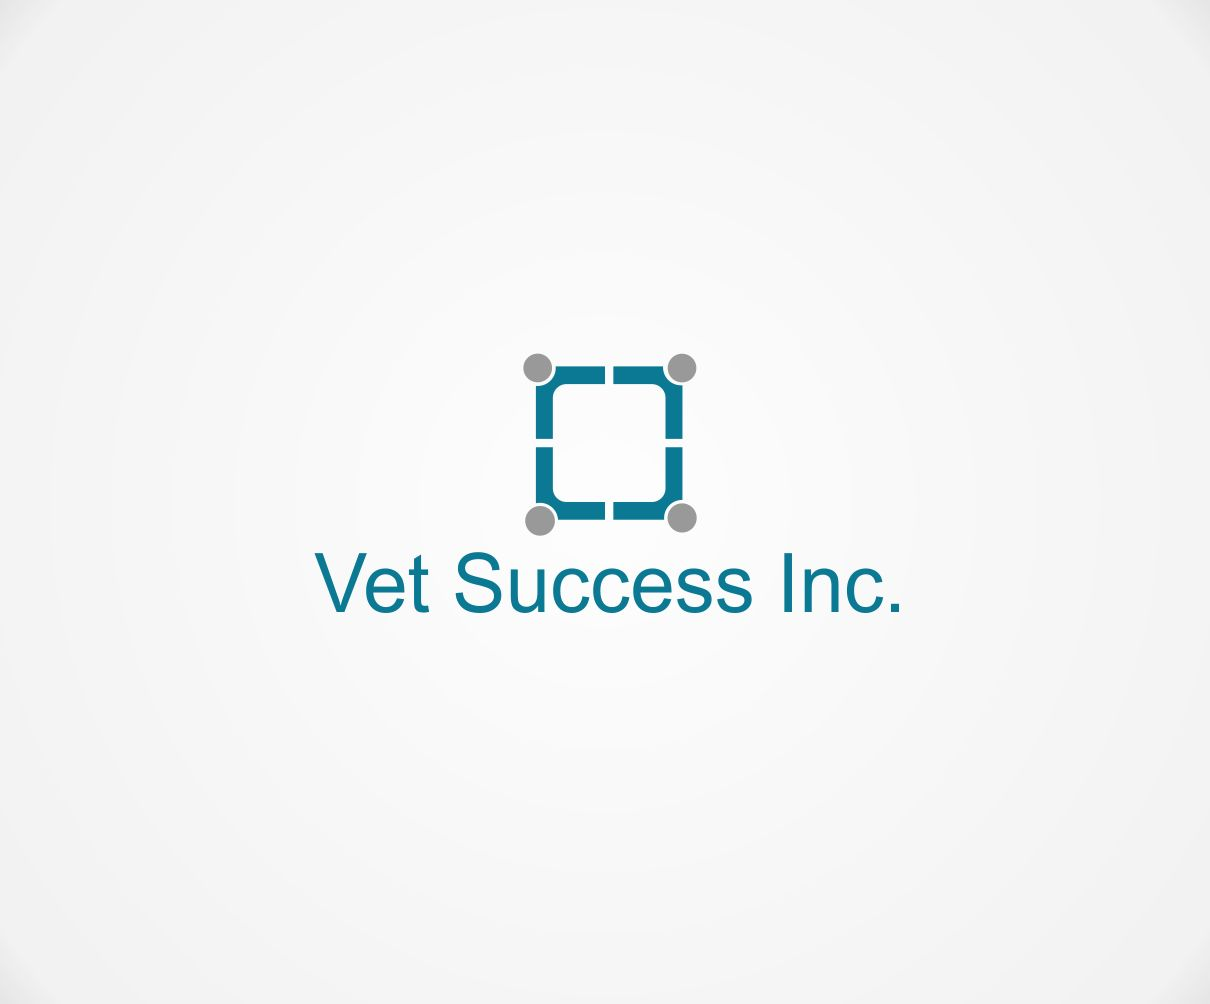 Logo Design by Fareldook Fareldook - Entry No. 90 in the Logo Design Contest Imaginative Logo Design for Vet Success Inc..